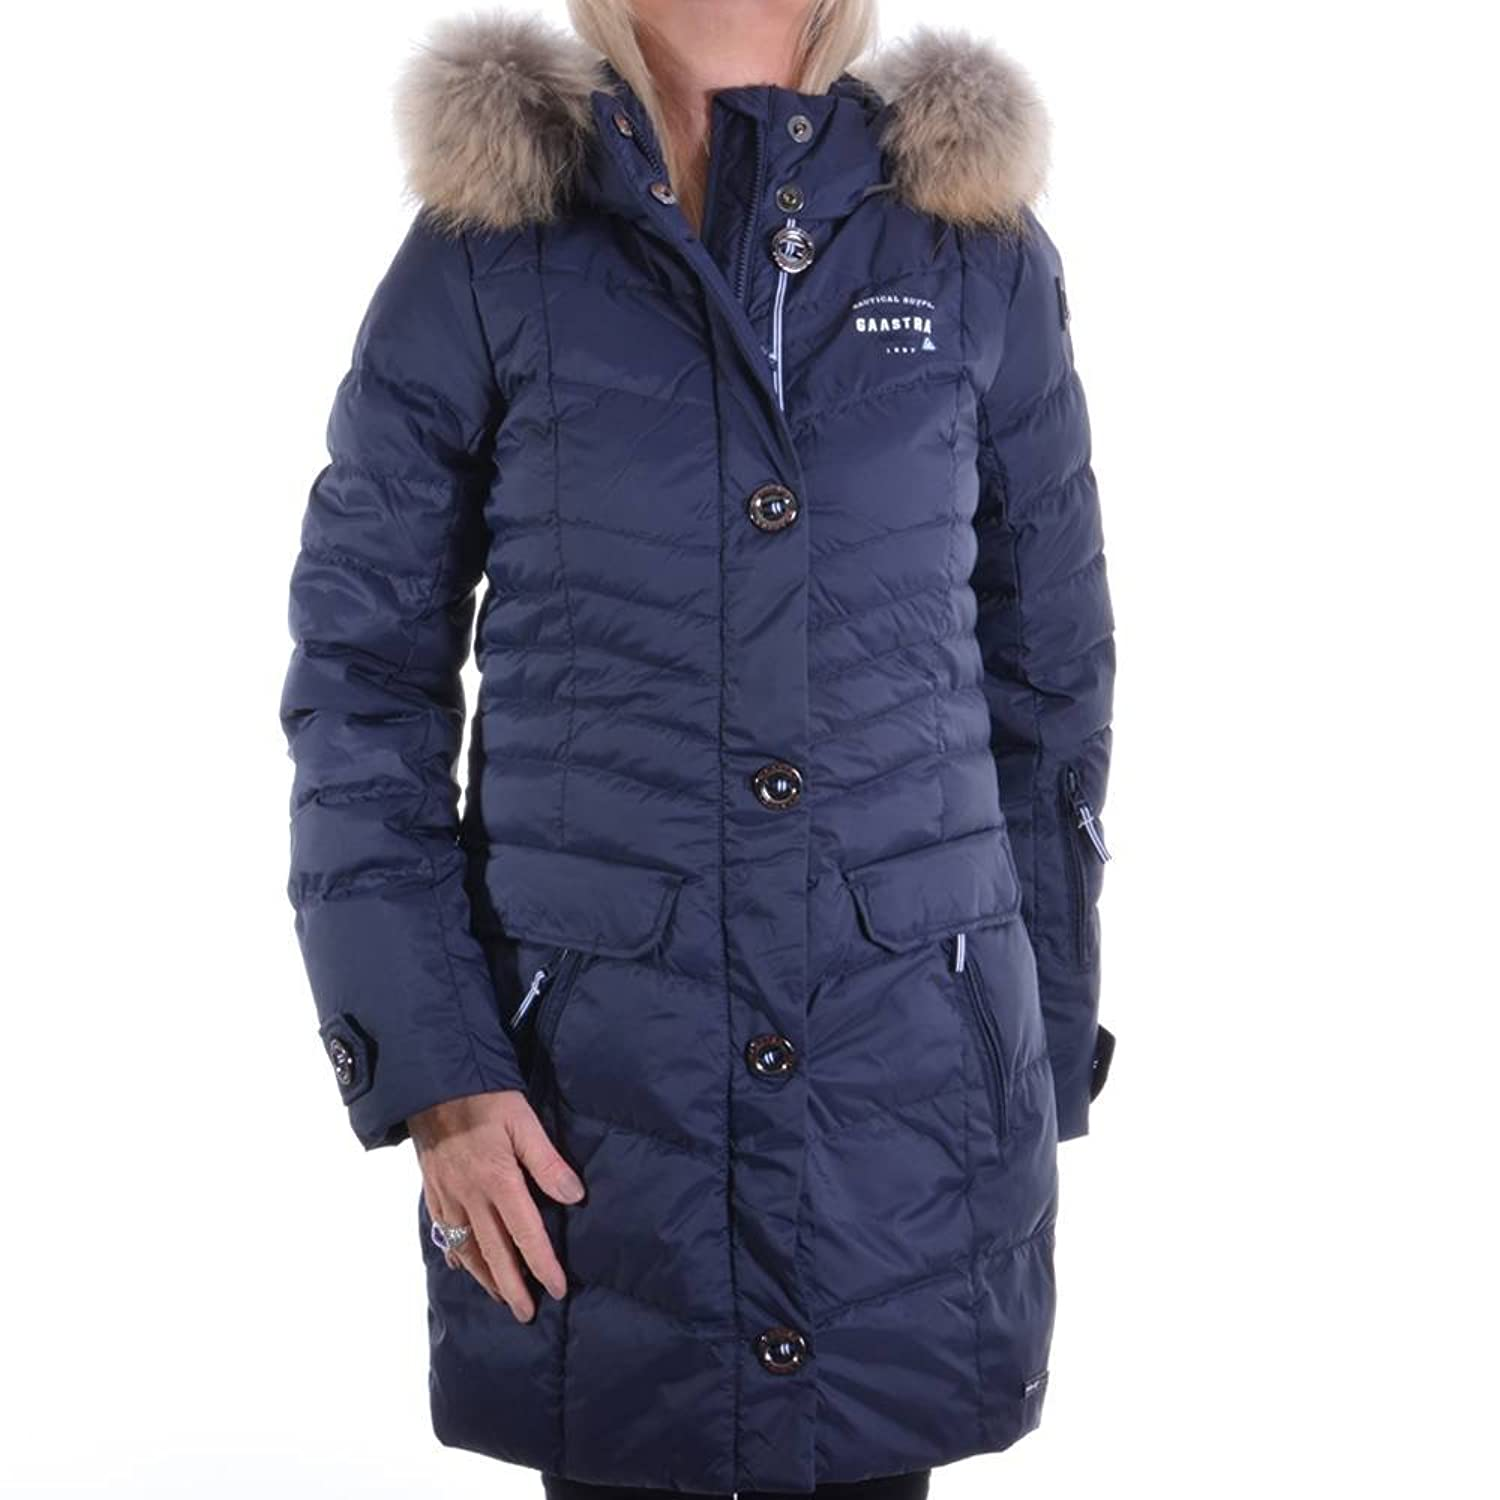 Gaastra Damen Daunen Mantel Ellington navy